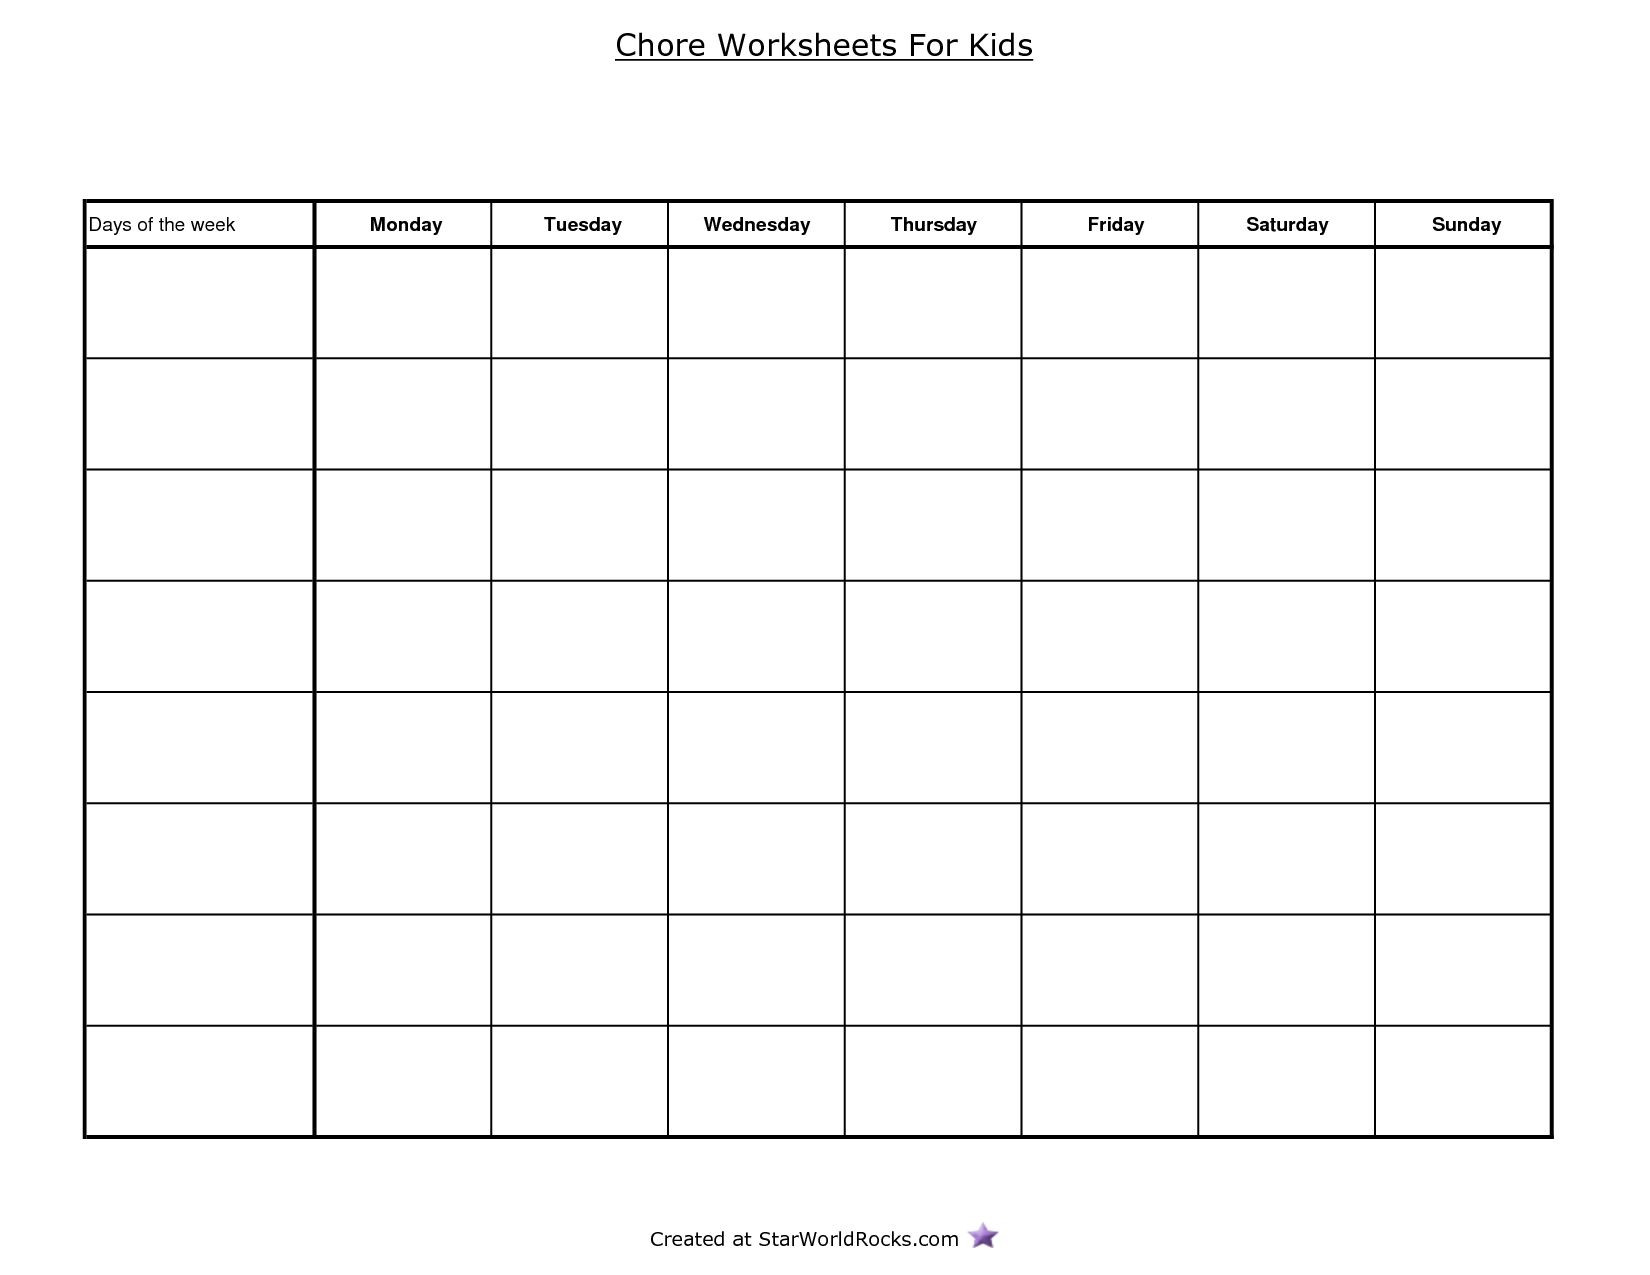 Free Printable Bar Graph Best S Free Printable Blank Charts Blank Chore